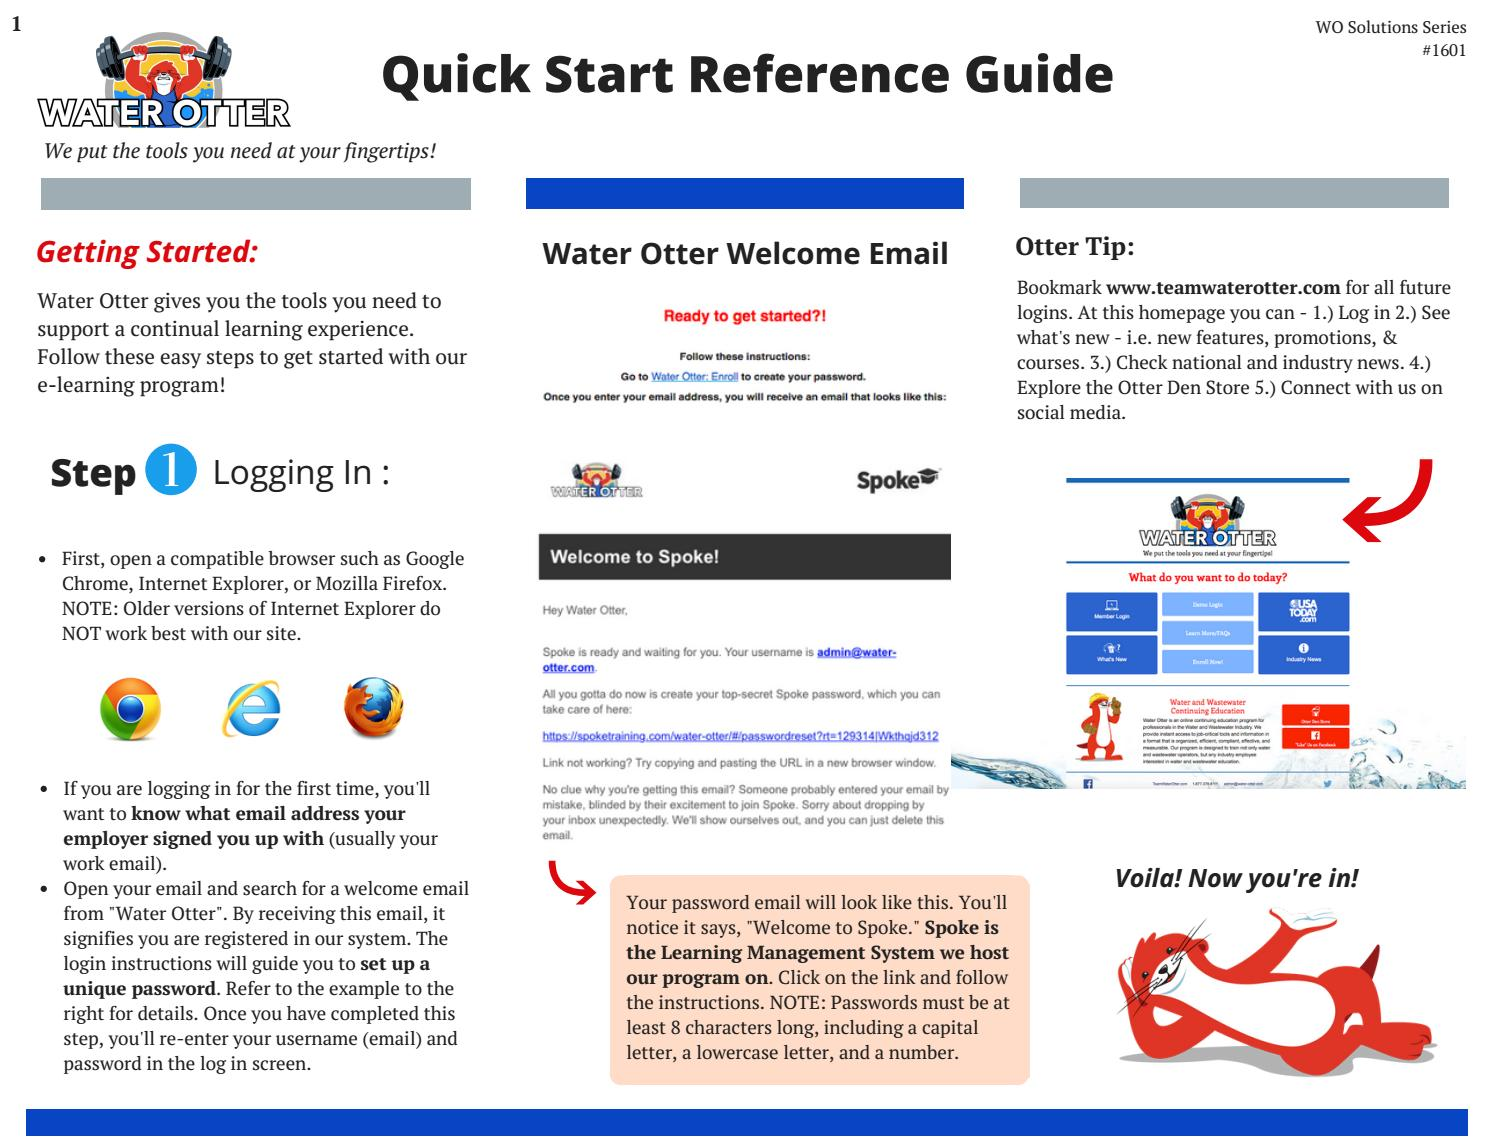 Water Otter Reference Guide by Water Otter - issuu